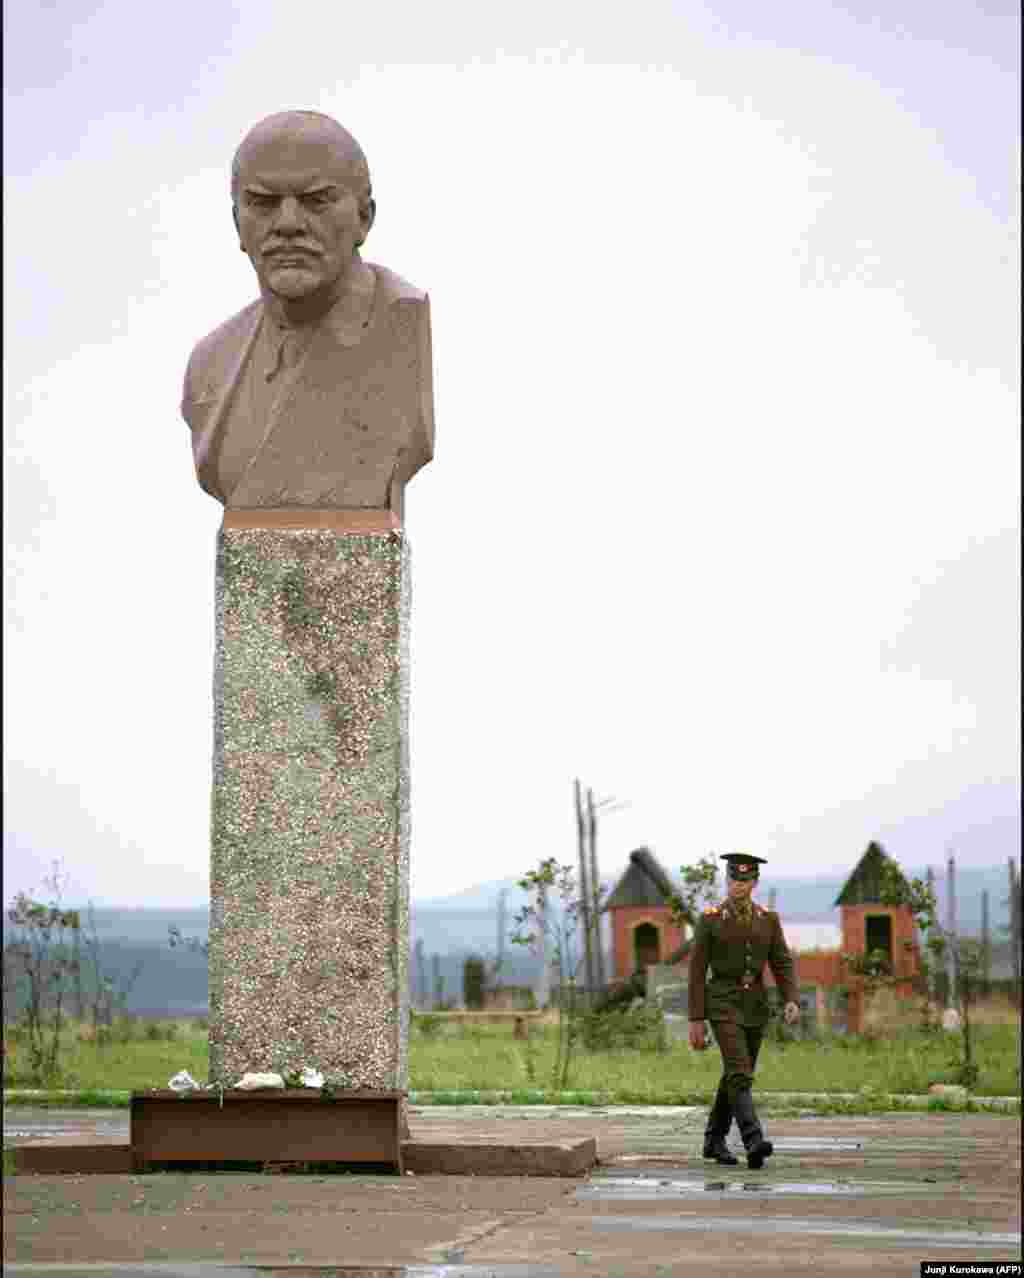 Kunashir, Russia: A photo from 1989 of the Lenin monument that still stands on one of the islands of the Kurile chain that is claimed by Japan but remains in Russian control.